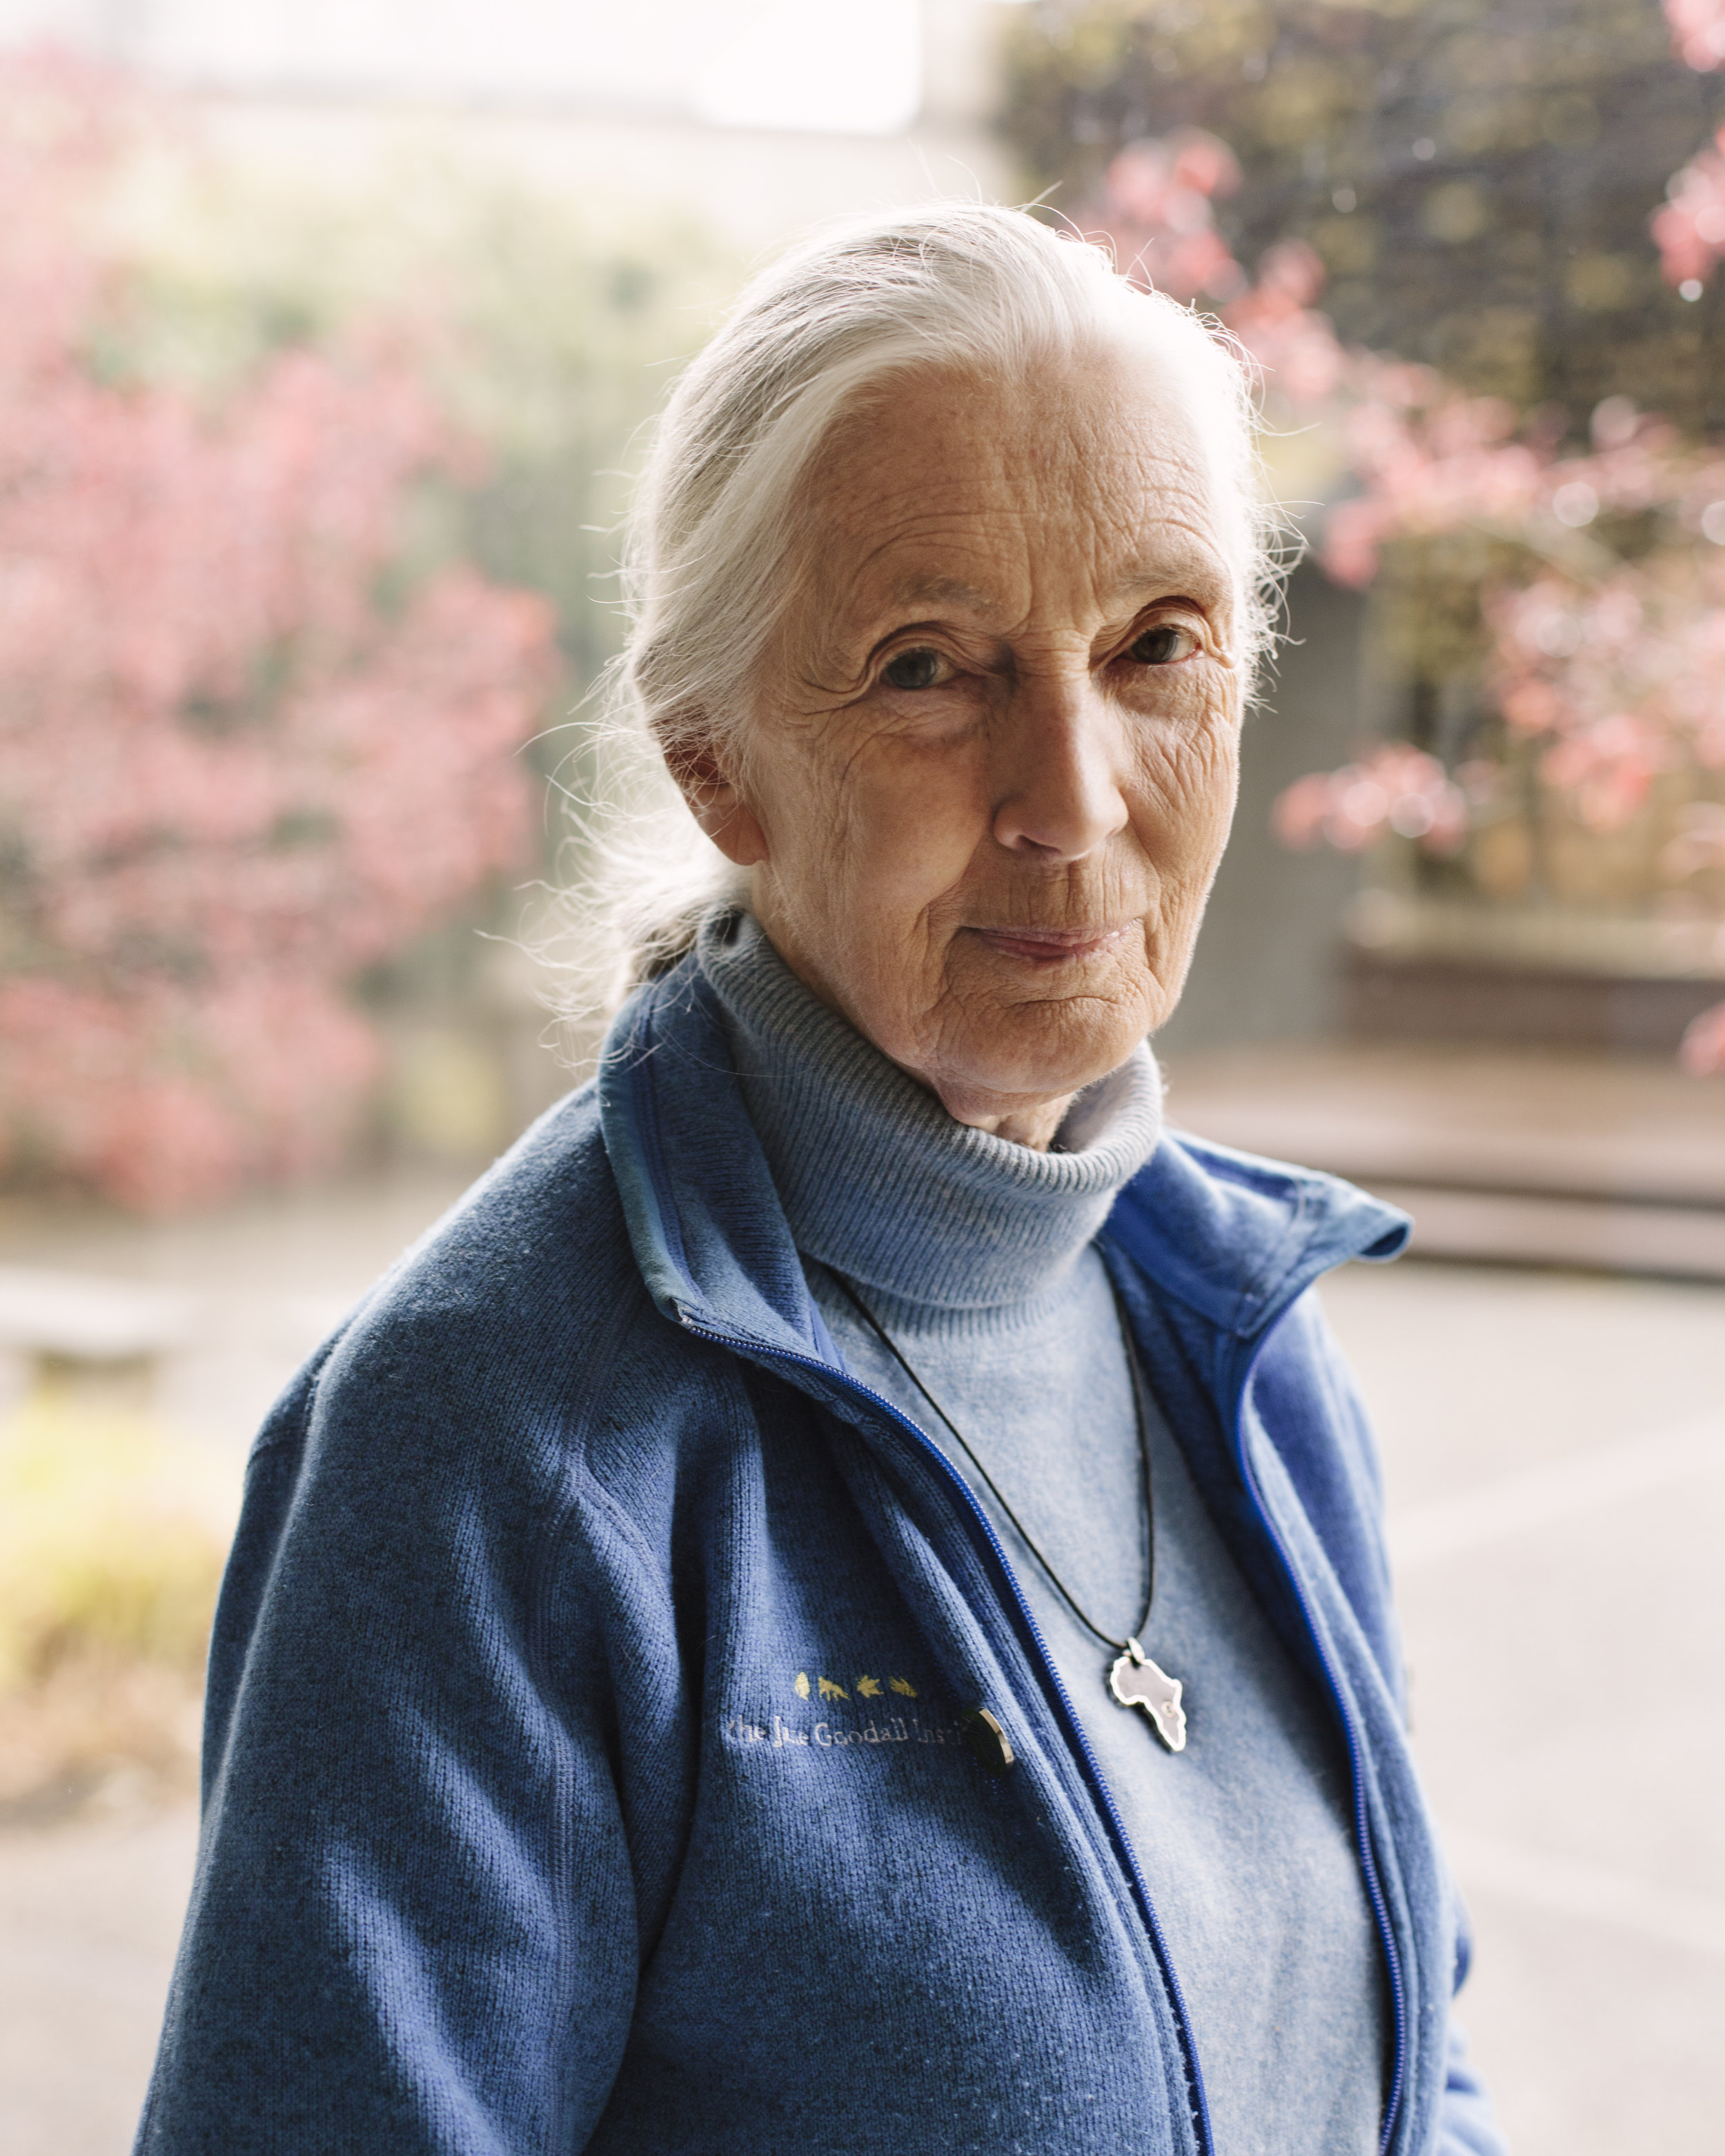 jane-goodall-final-final-0003.jpg